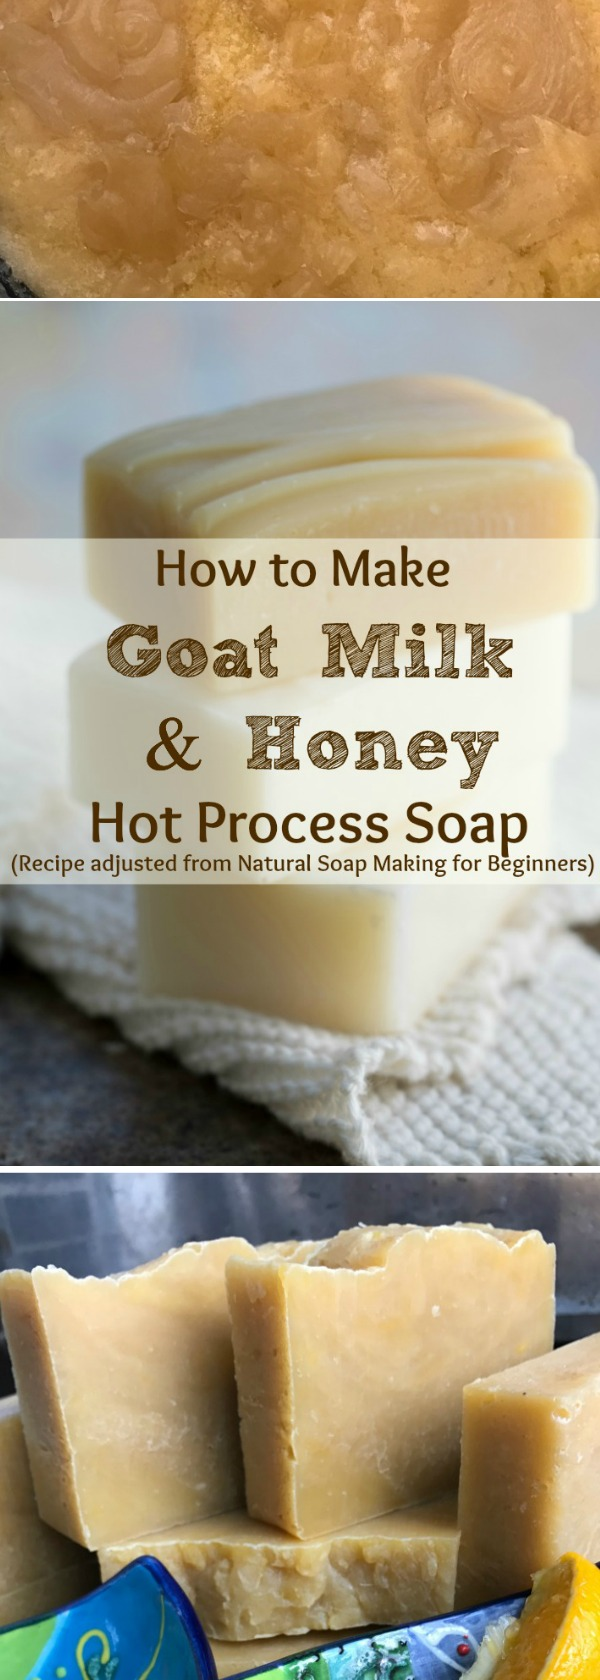 I've always wanted to make  Goats Milk & Honey Handmade Soap ! Here is a recipe for natural Moisturizing Hot Process Goat Milk & Honey Soap, PLUS how I changed the directions  from Cold Process Soap to the Hot Process soap making Method. Make your own soap! This recipe is from this incredible book:  Natural Soap Making for Beginners, by Kelly Cable.